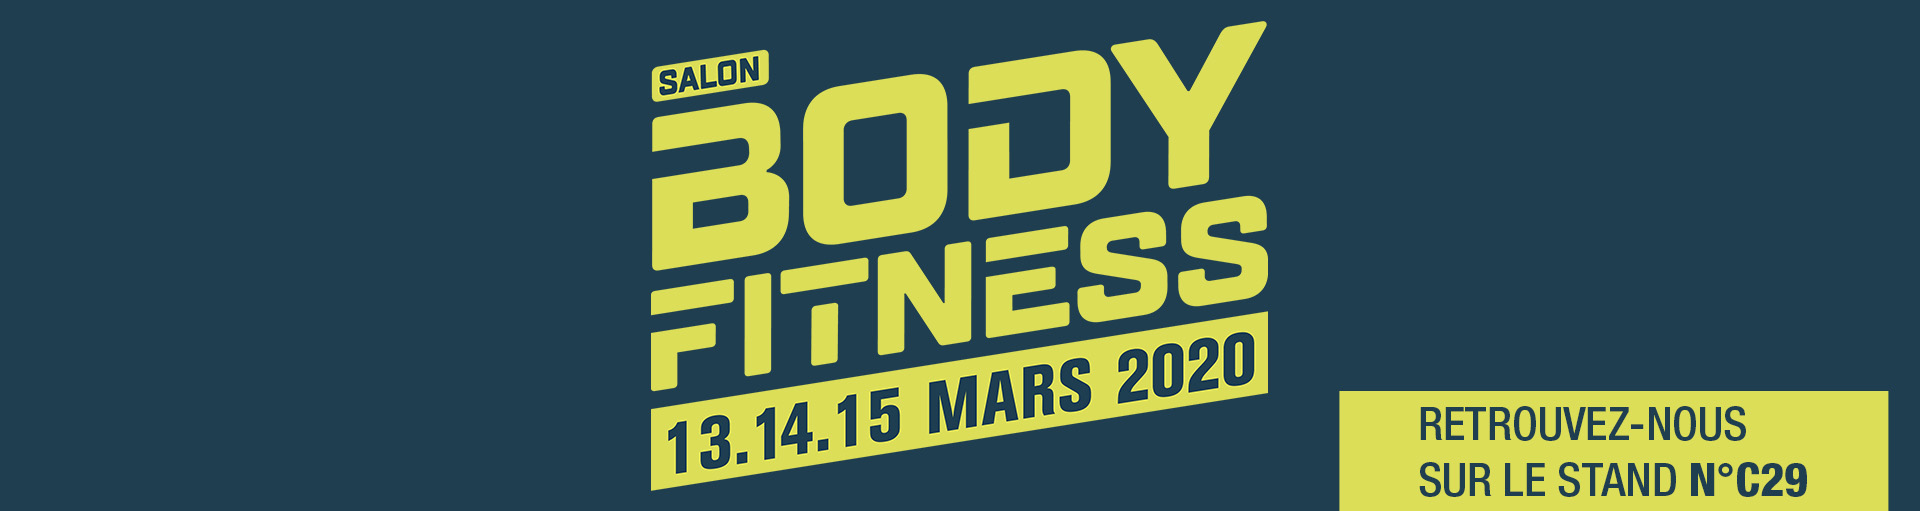 Salon Body Fitness 2020